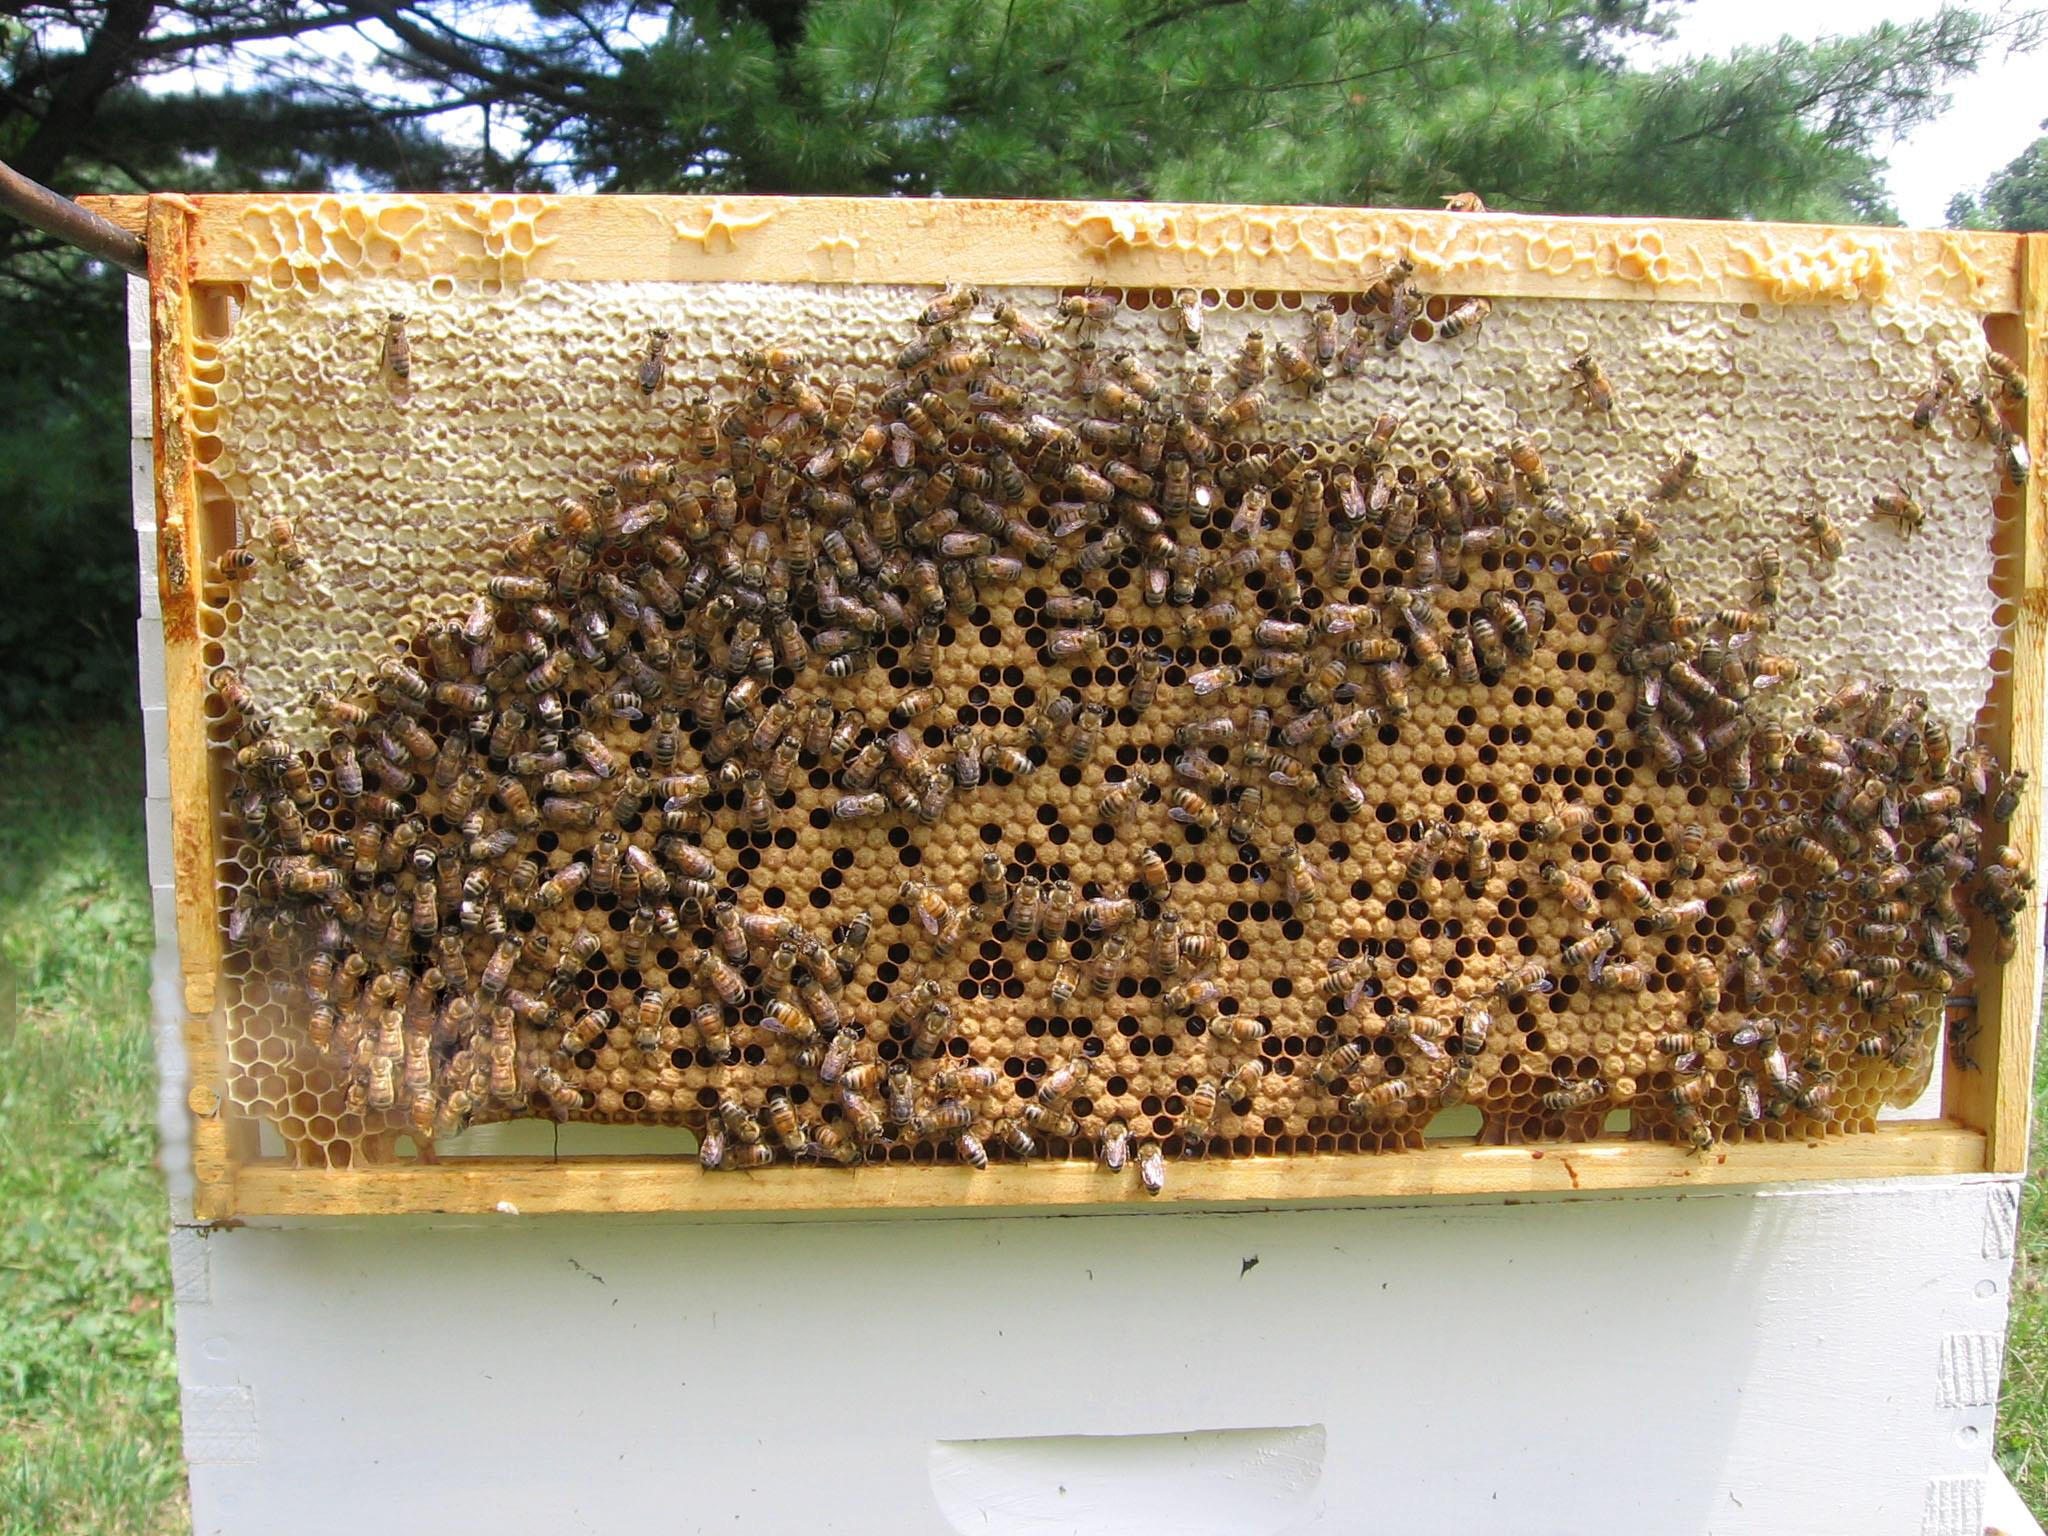 A Nice Frame of Italian Honey Bees